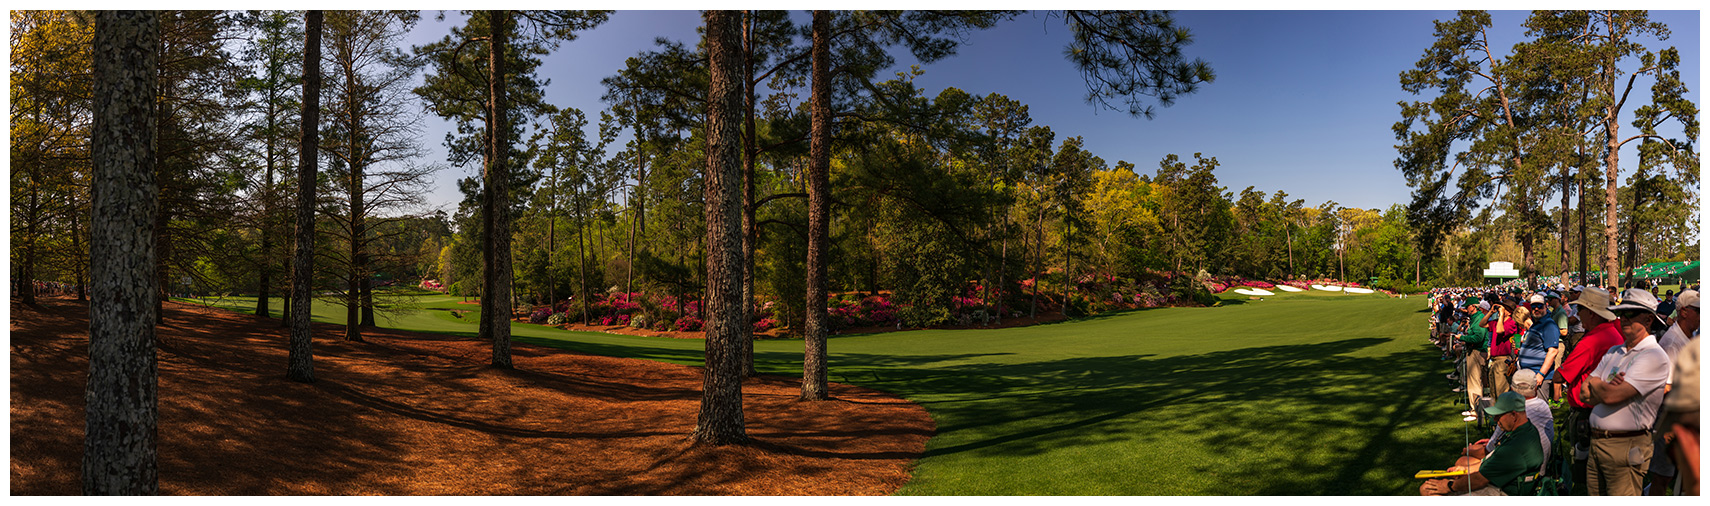 augusta-national-azalea-13th-hole-dogleg-masters-panoramic